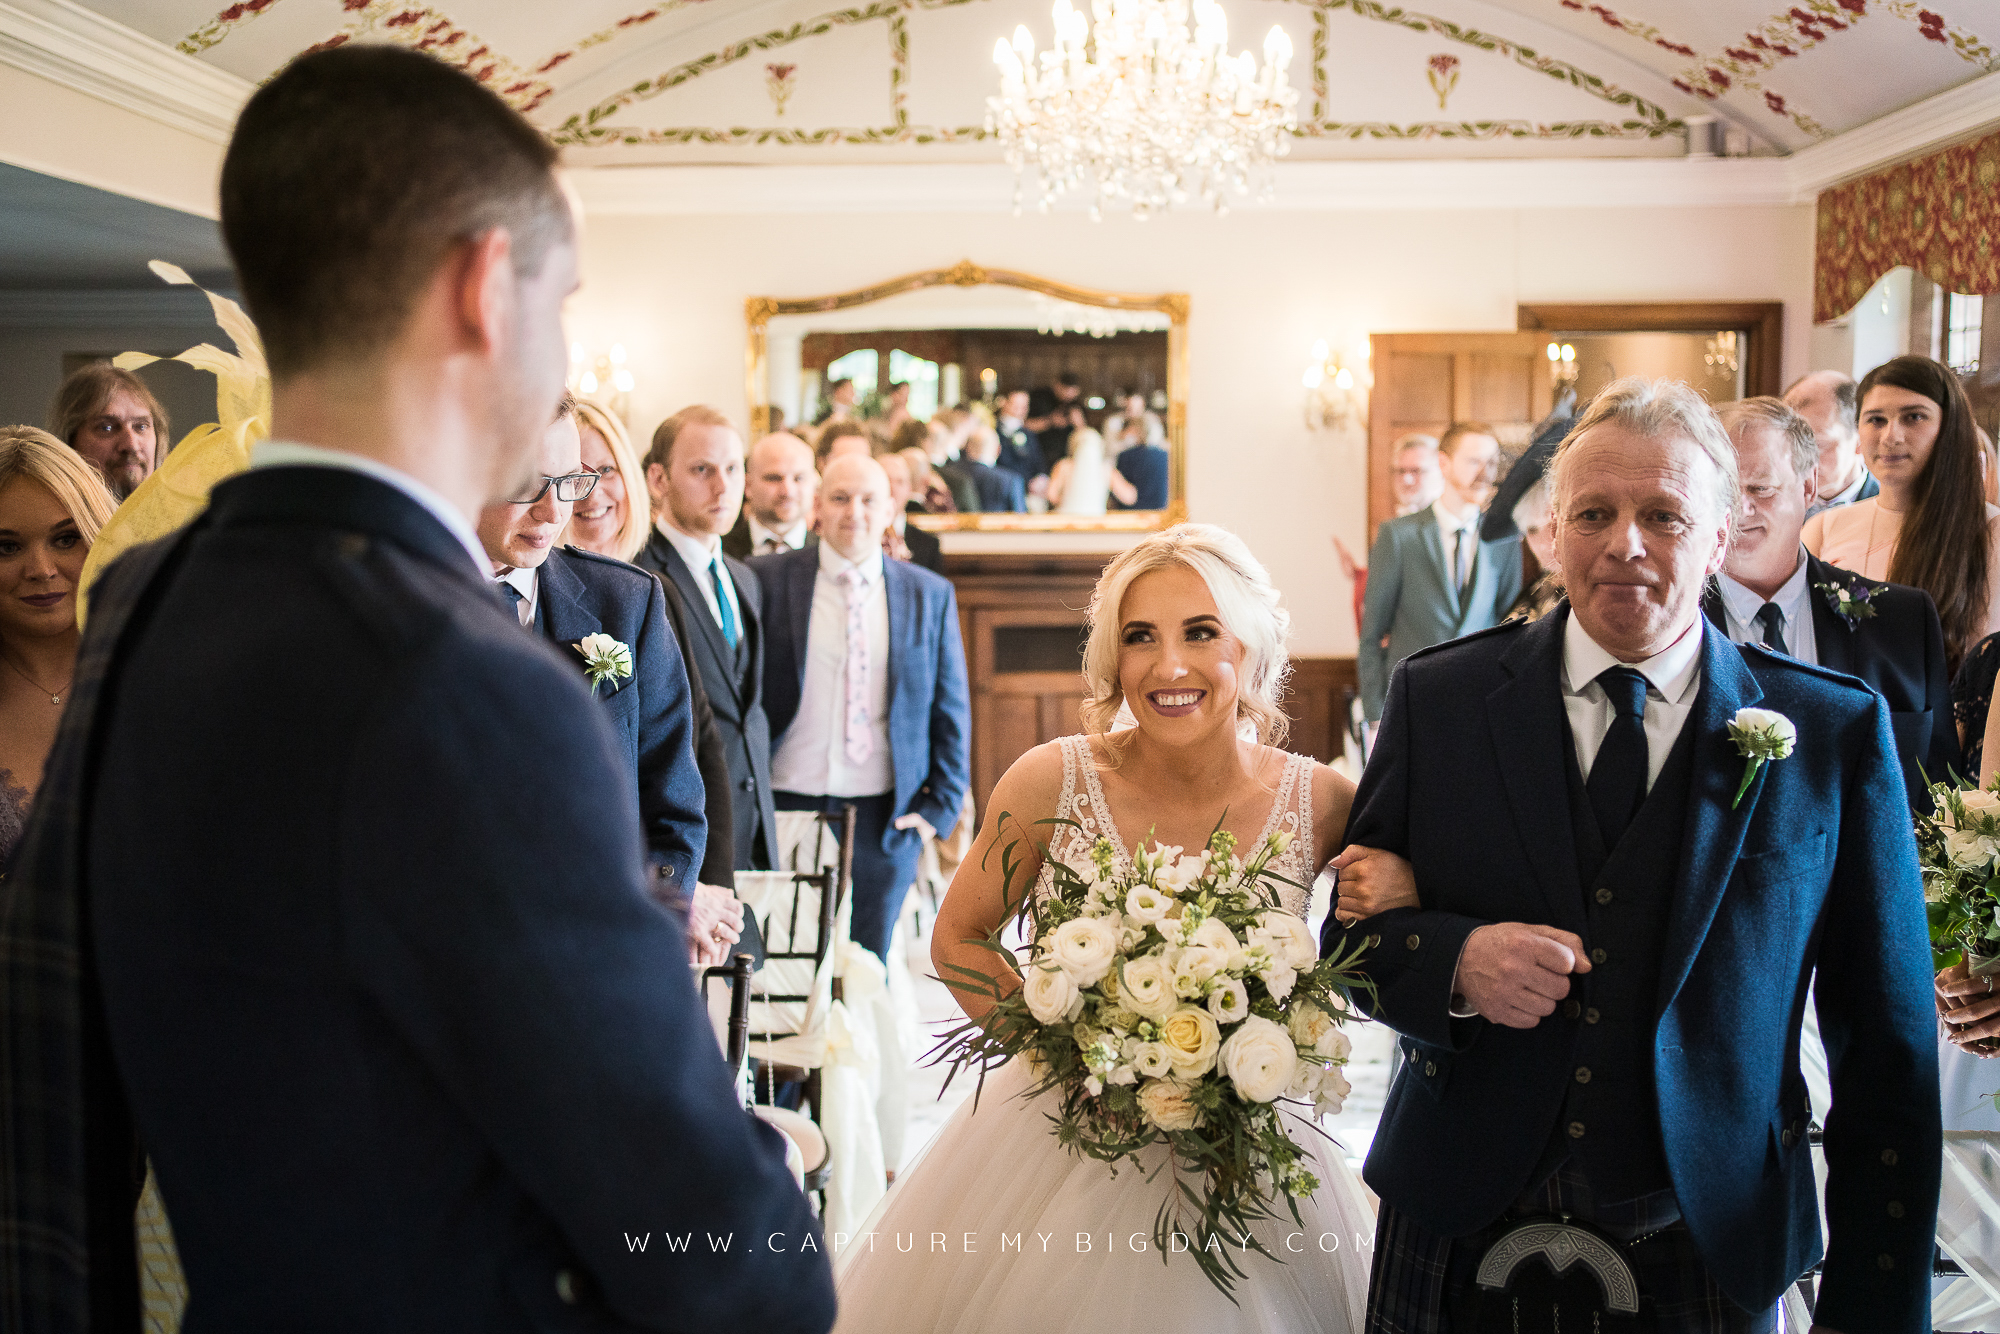 bride smiling at groom while walking down the aisle